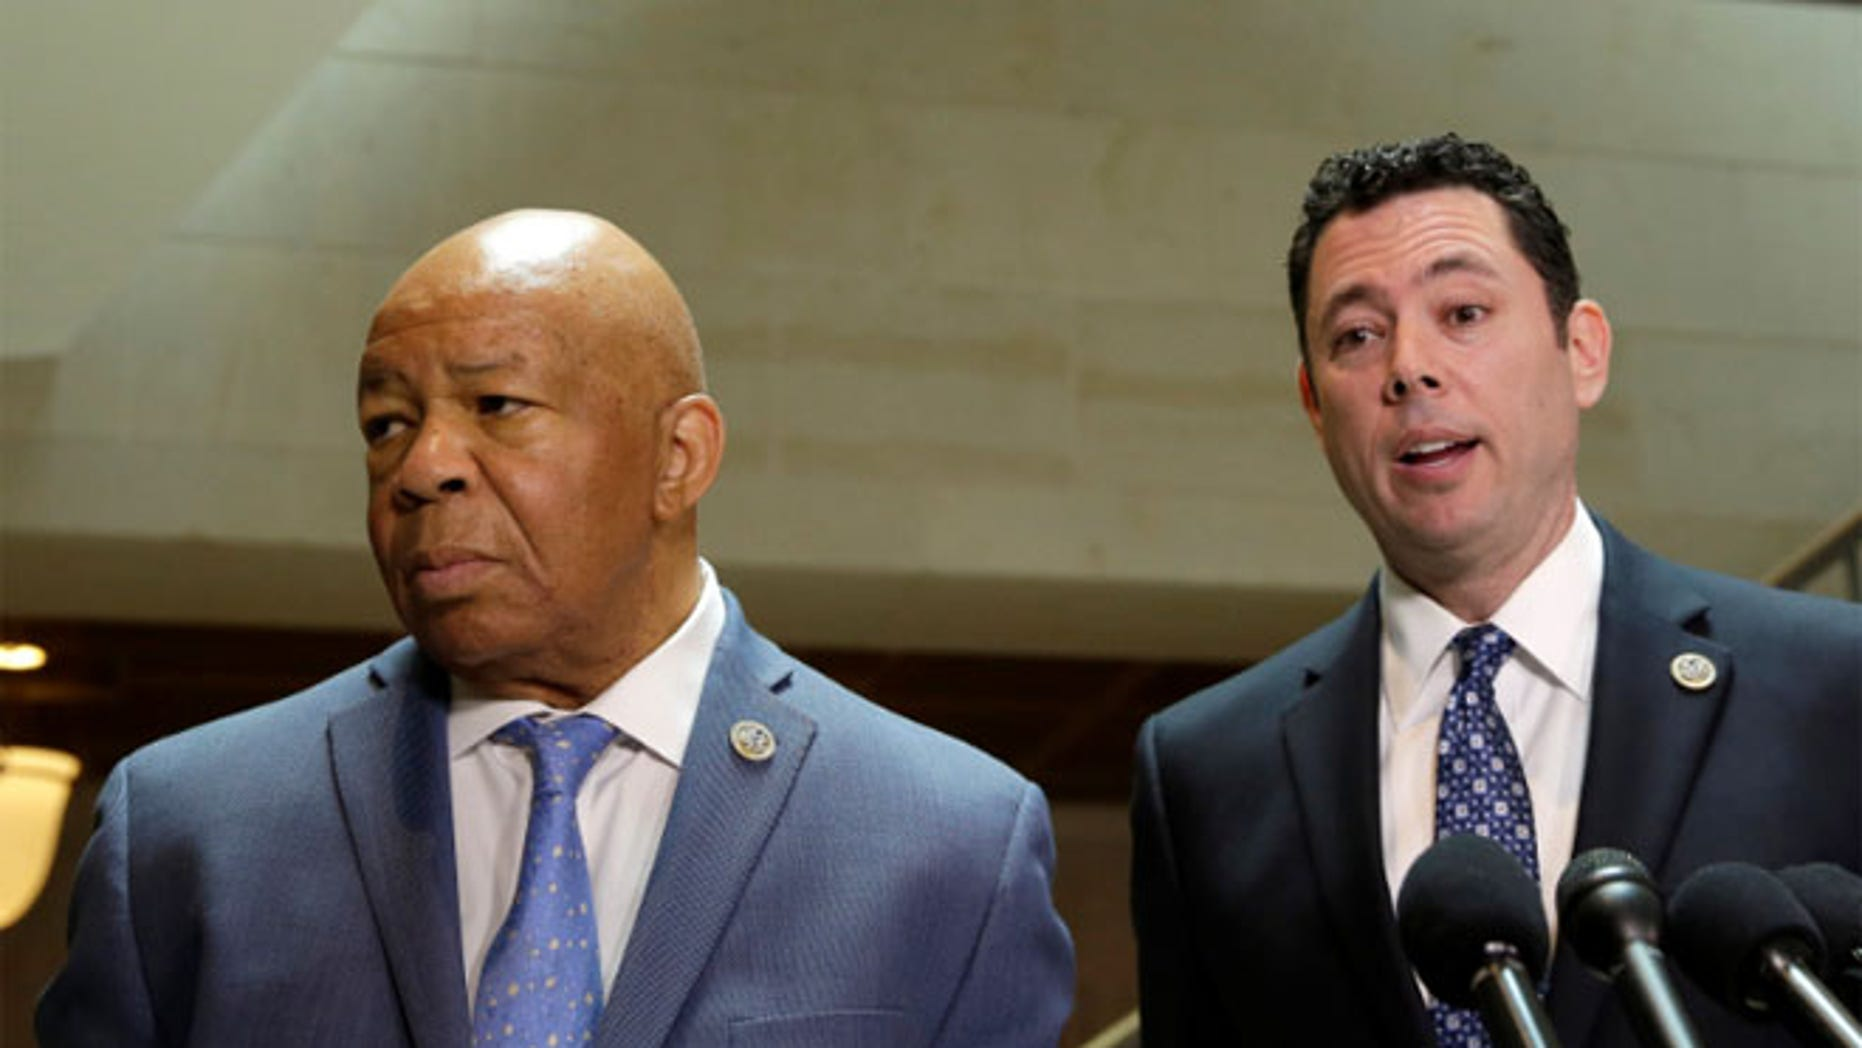 Reps. Jason Chaffetz, R, and Elijah Cummings said they saw no evidence that Flynn, a retired Army lieutenant general, properly disclosed foreign payments he received to military officials or on his security clearance paperwork.